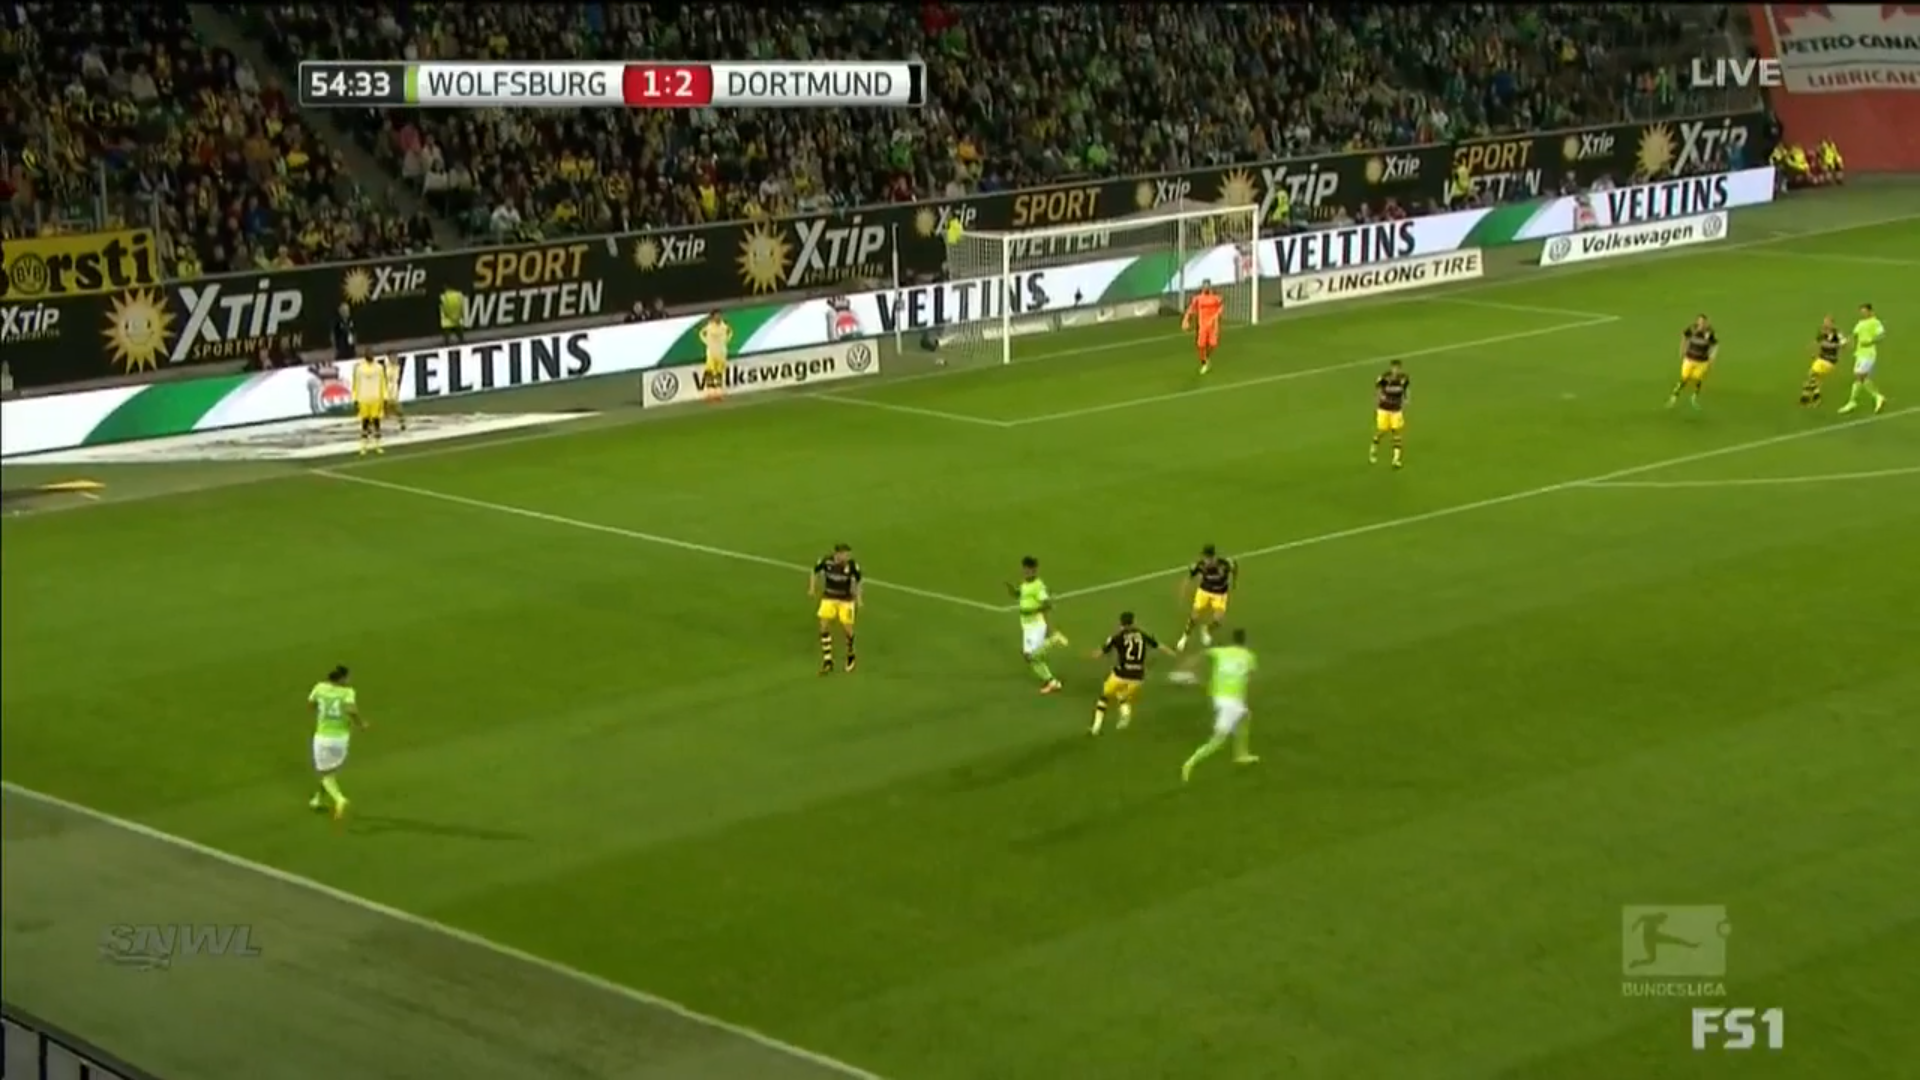 Draxler combines with Didavi while drifting infield towards the goal